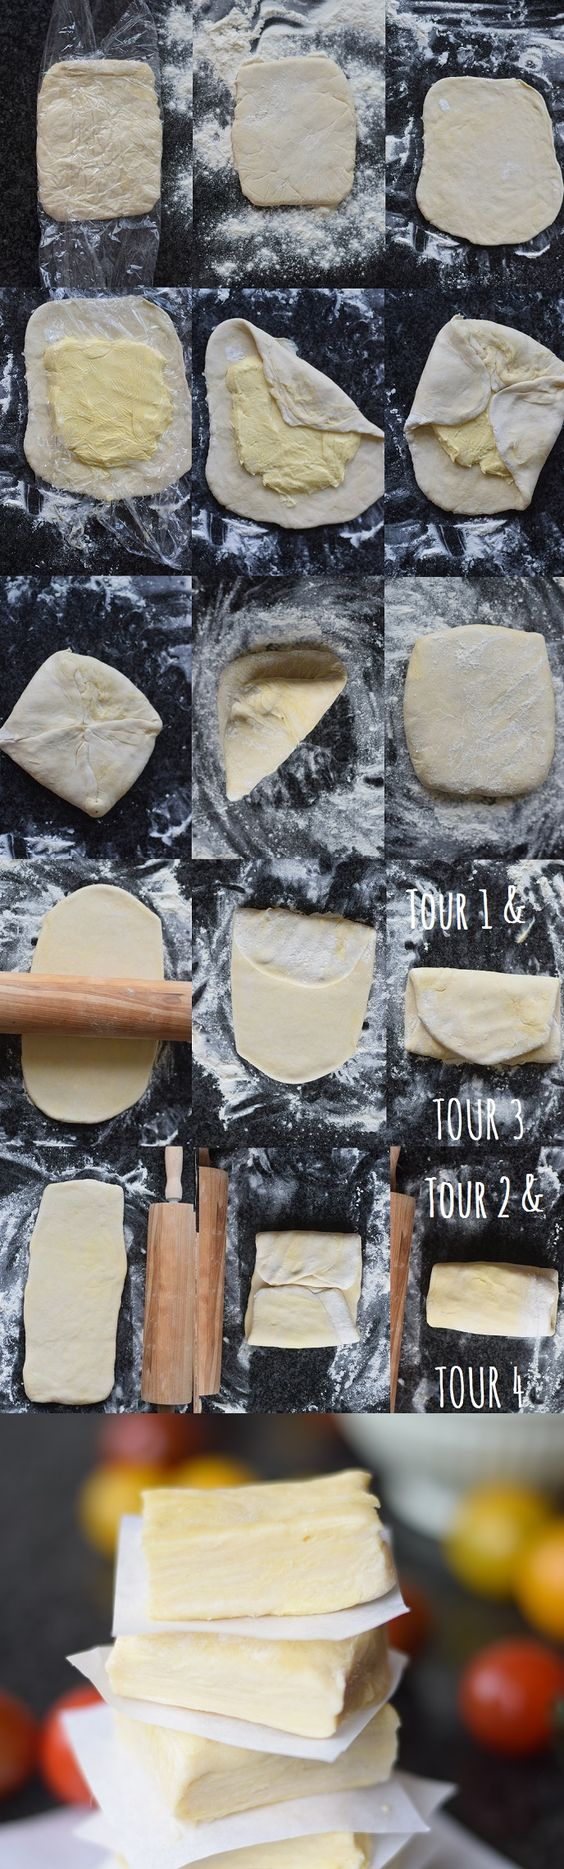 Blätterteig - Puff Pastry - How to - Basics #food #fowto #puffpastry